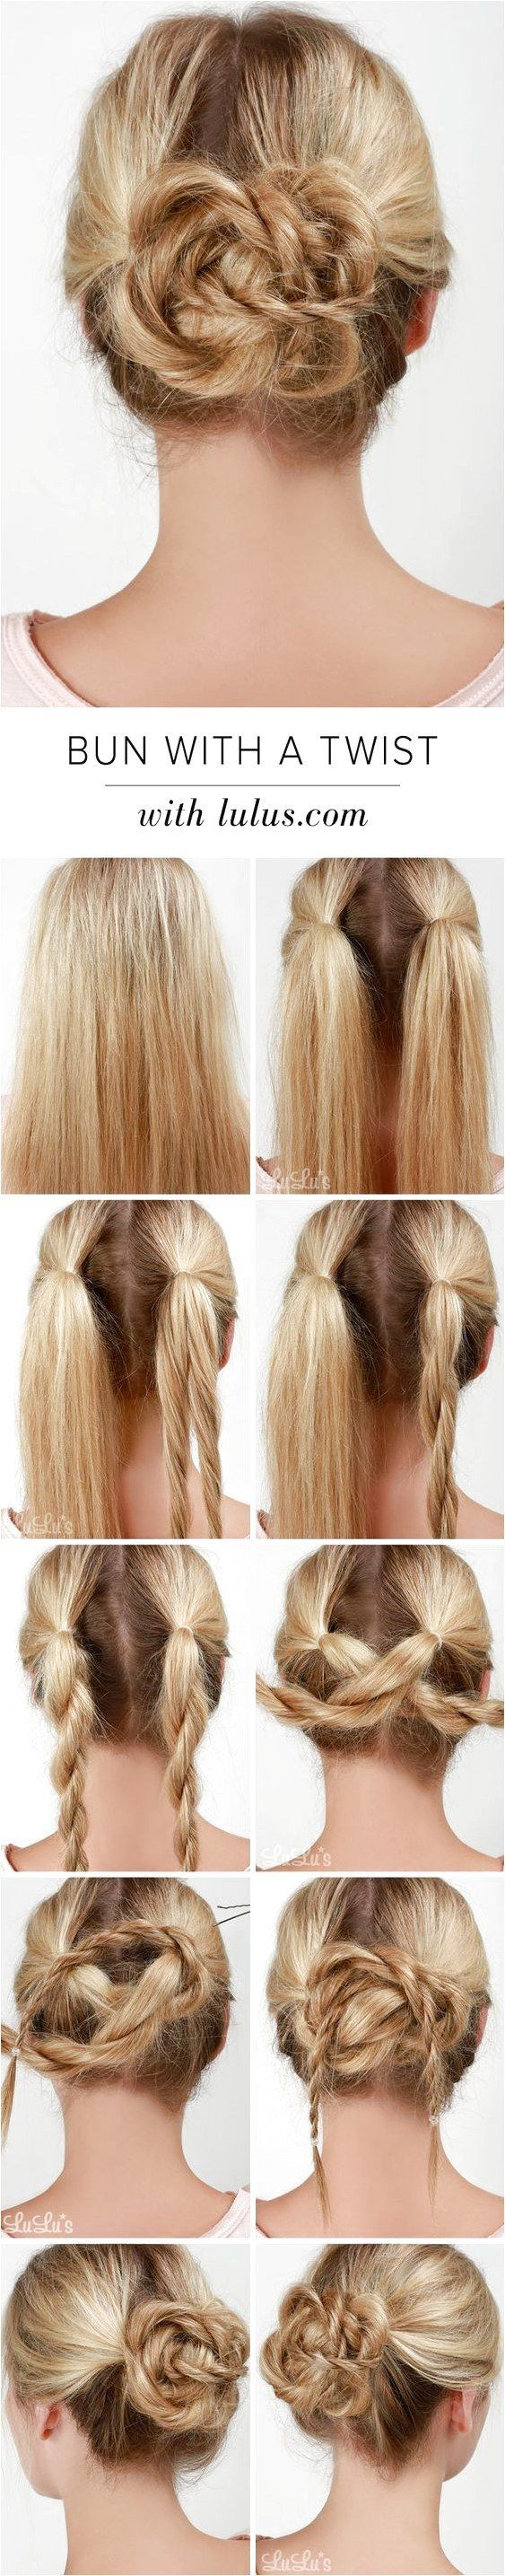 Get Gorgeous Hair With These Easy Step by Step Hair ...